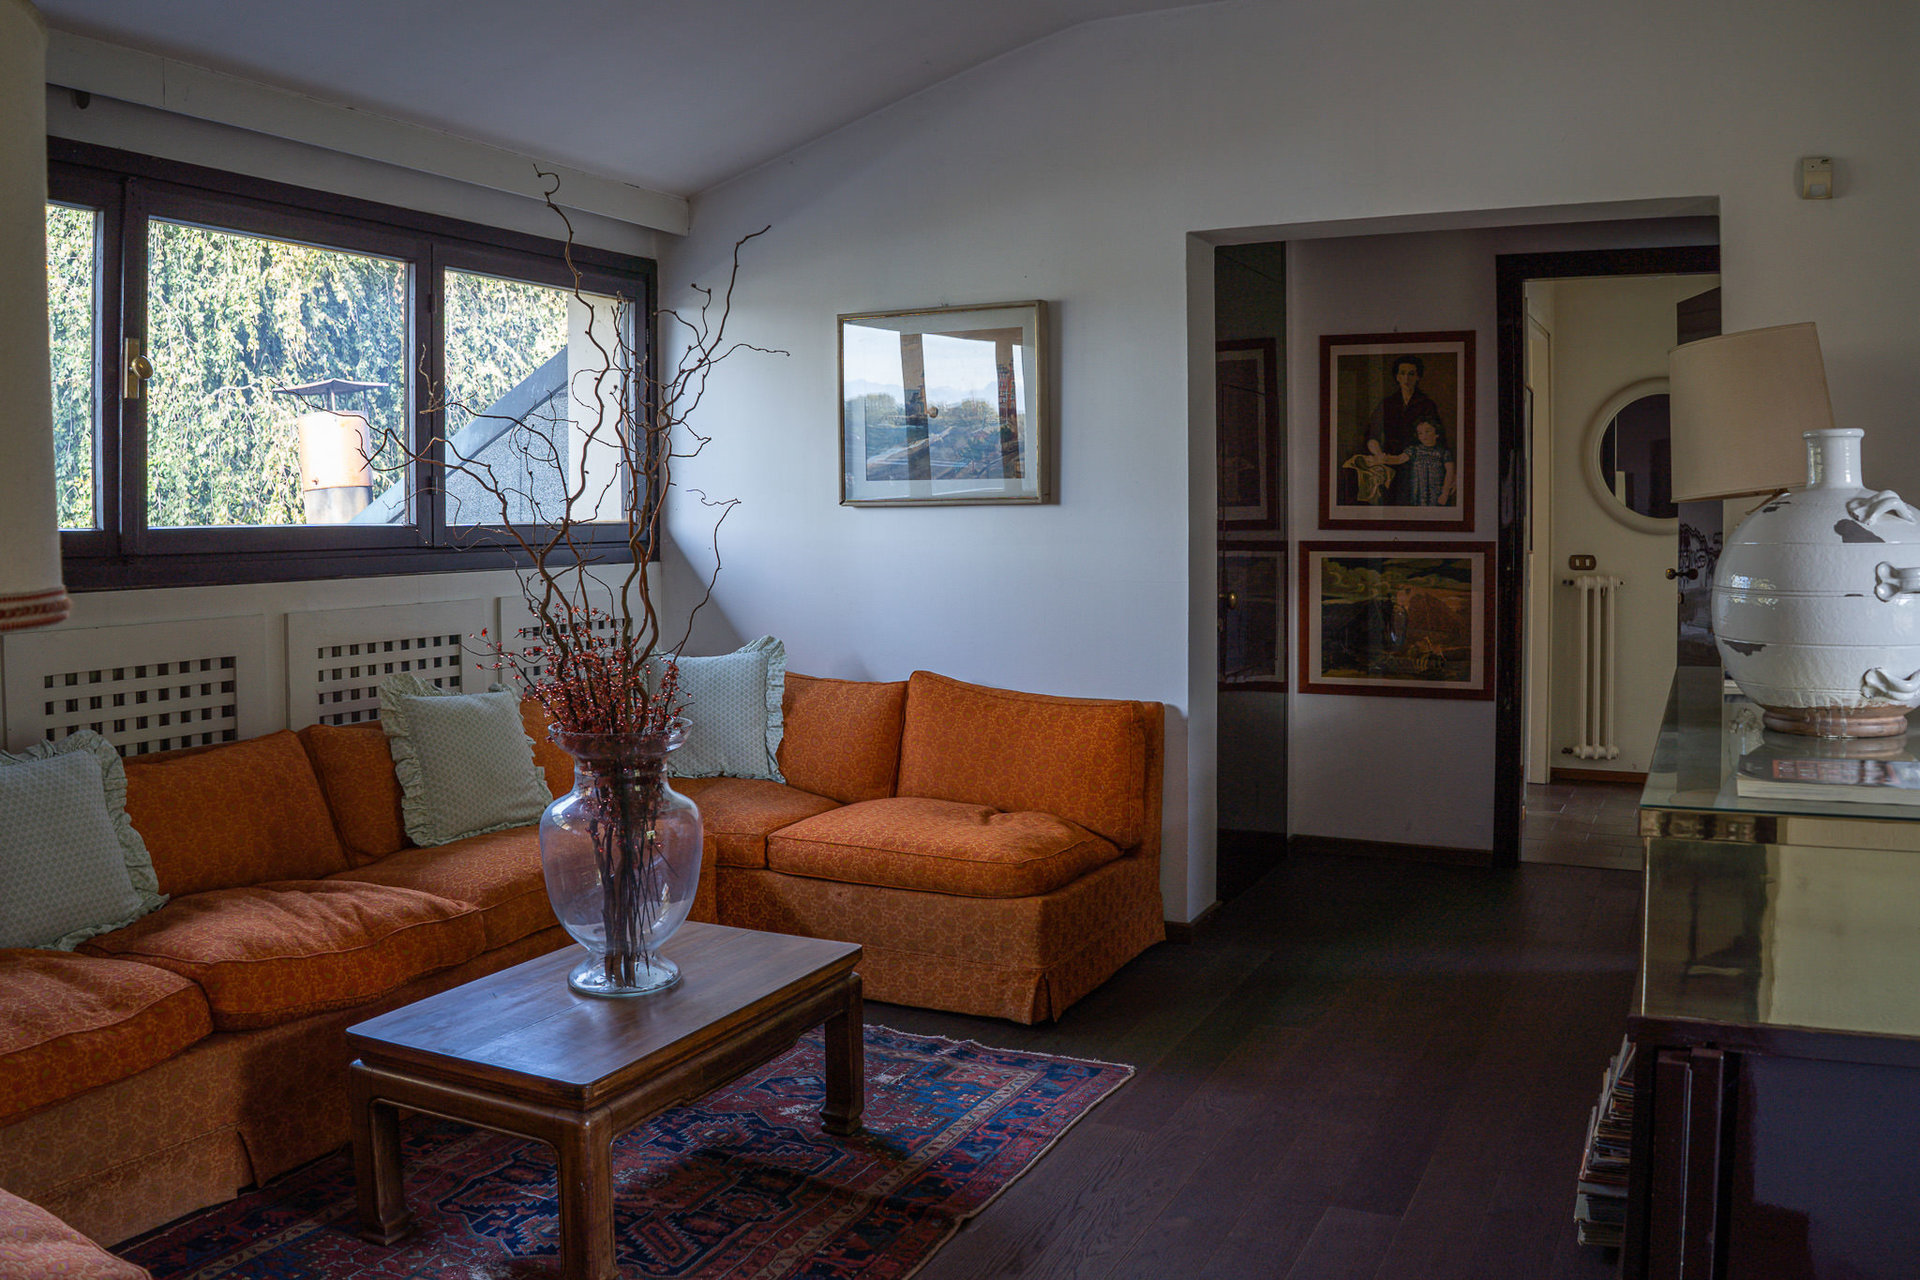 Period villa with park for sale on Ticino River - living room with parquet